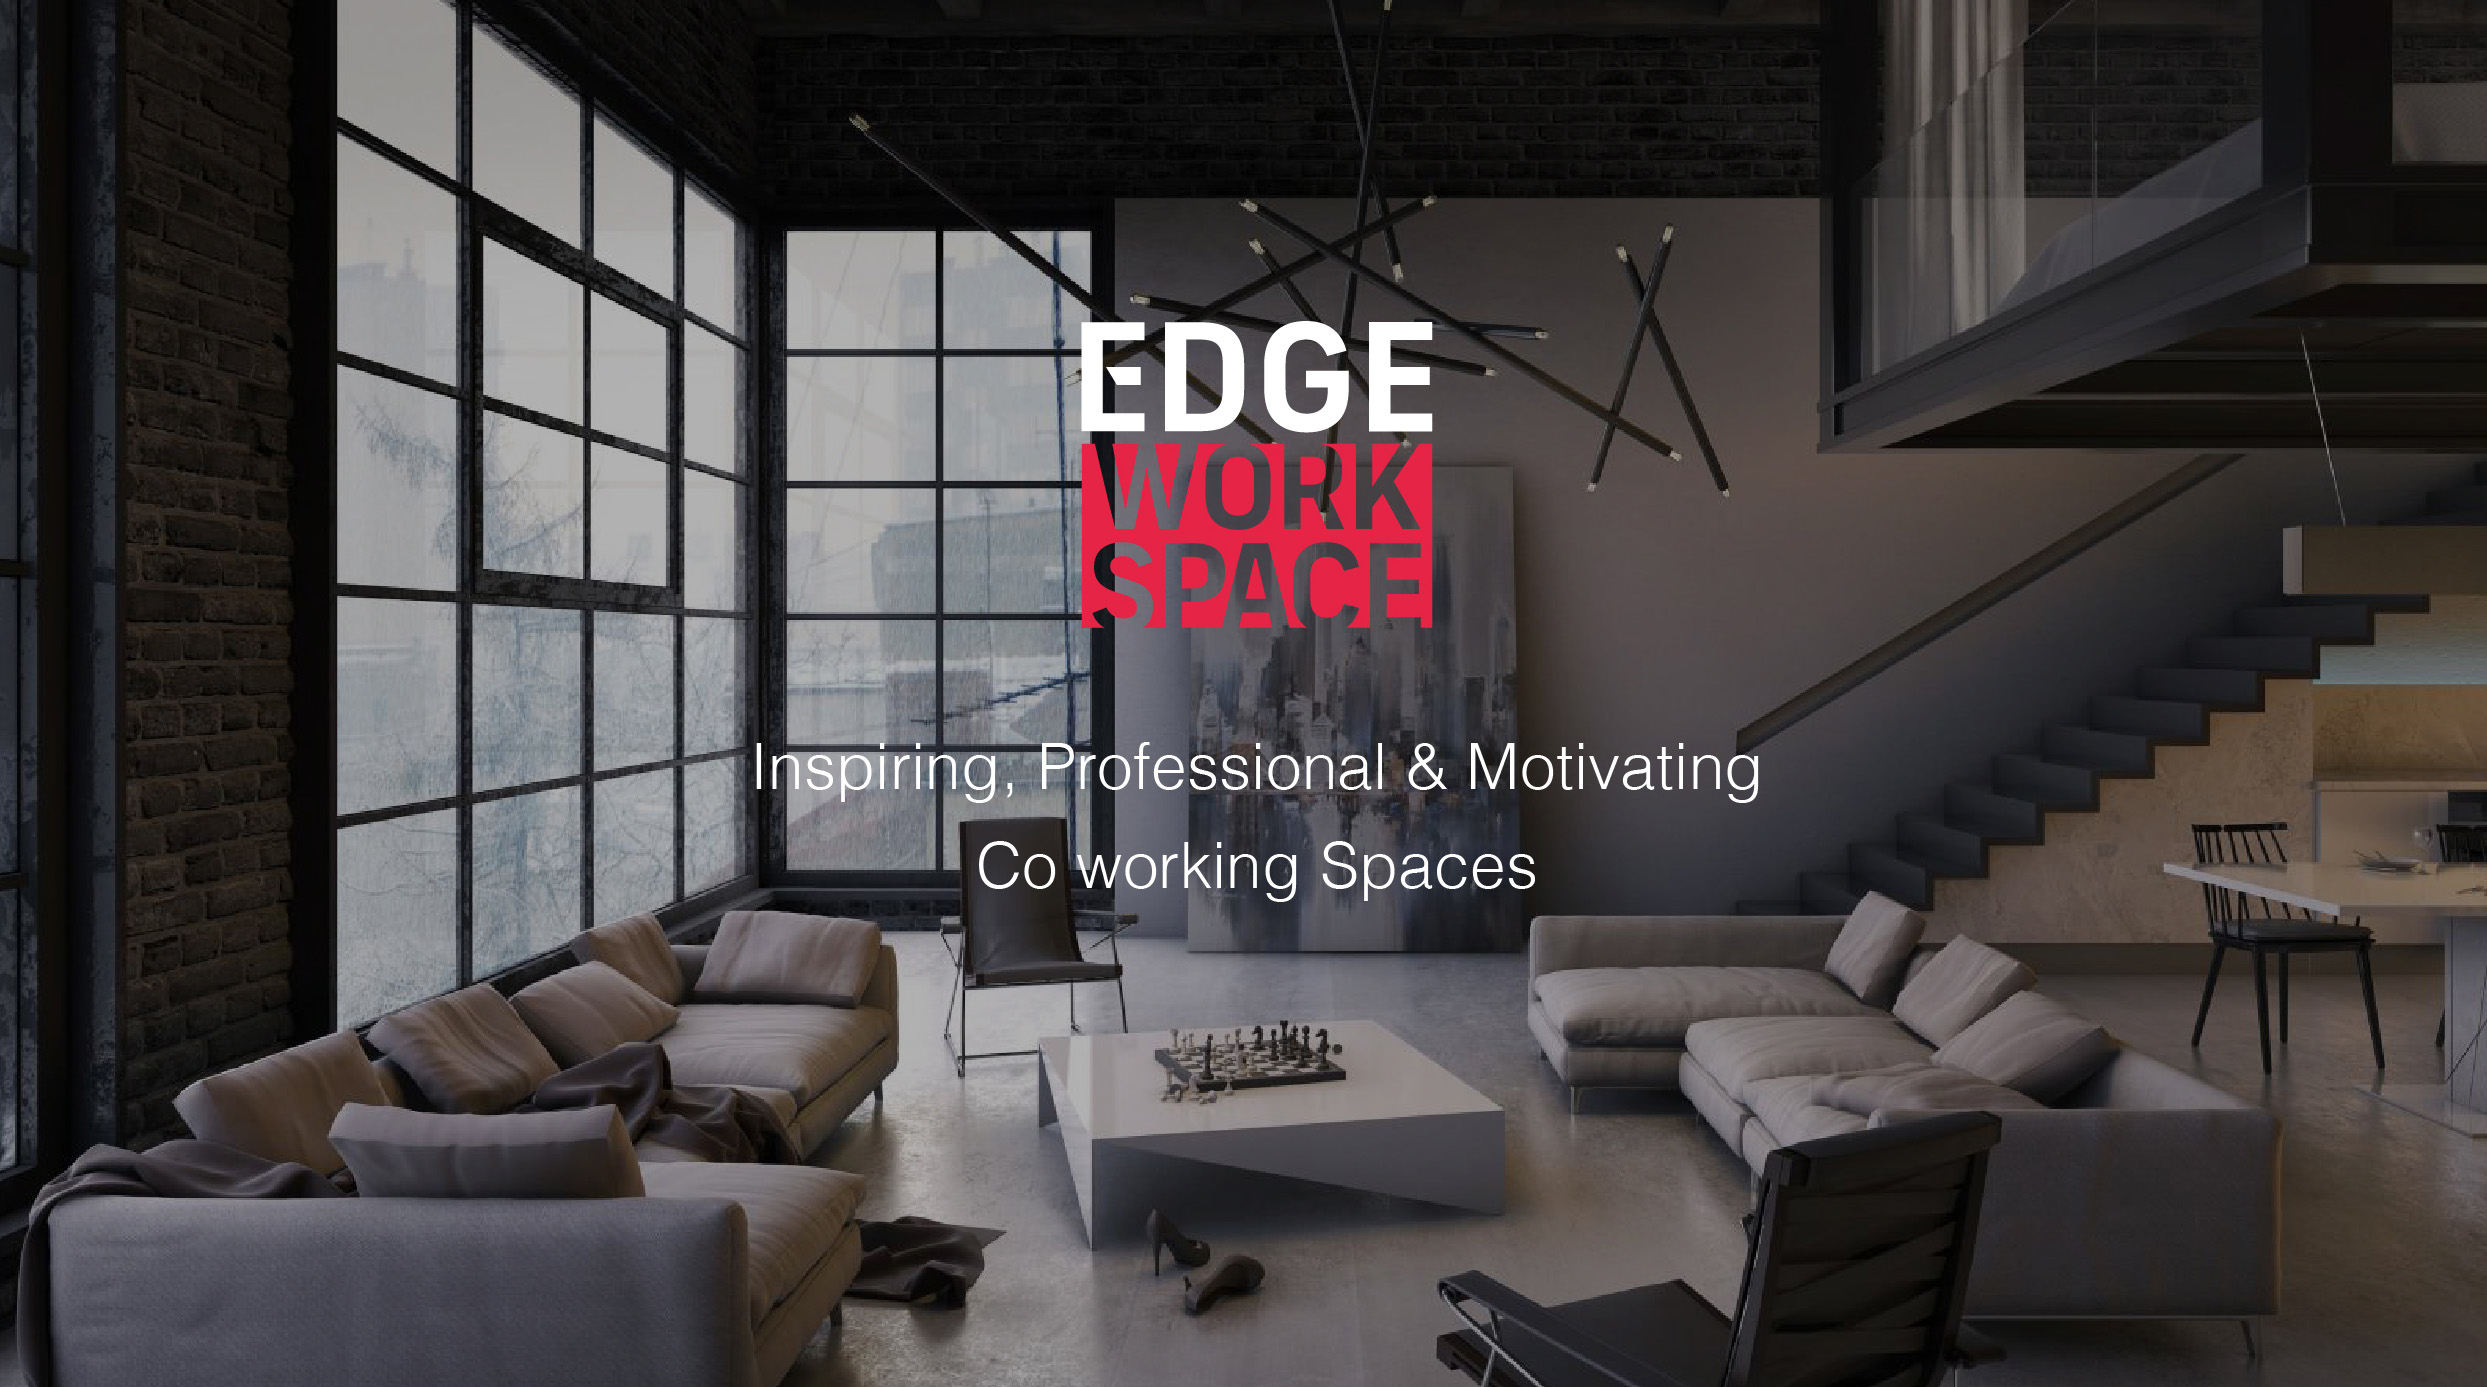 LMPP Edge Workspace Interior.jpg